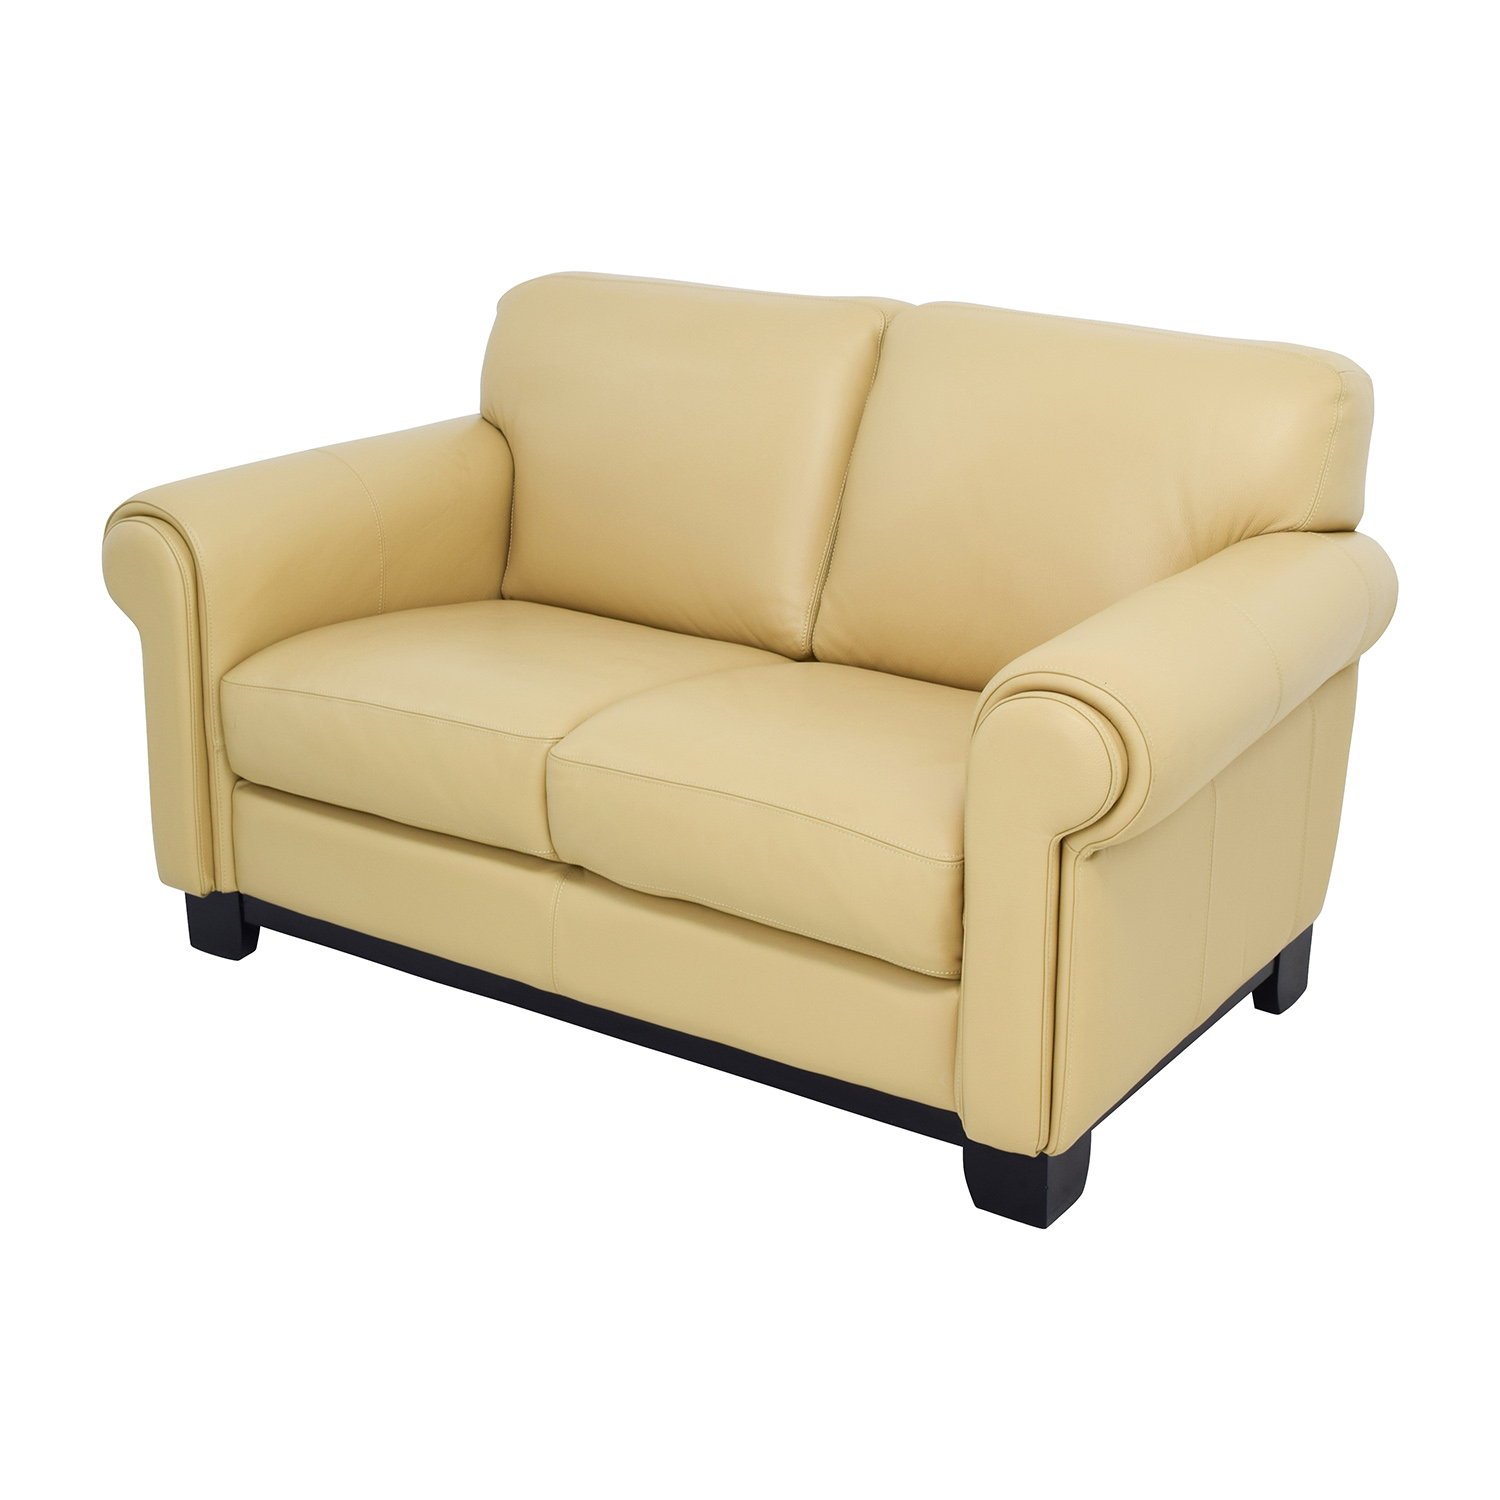 Chateau Dax Furniture Reviews: Chateau D'Ax Chateau D'Ax Beige Leather Two-seat